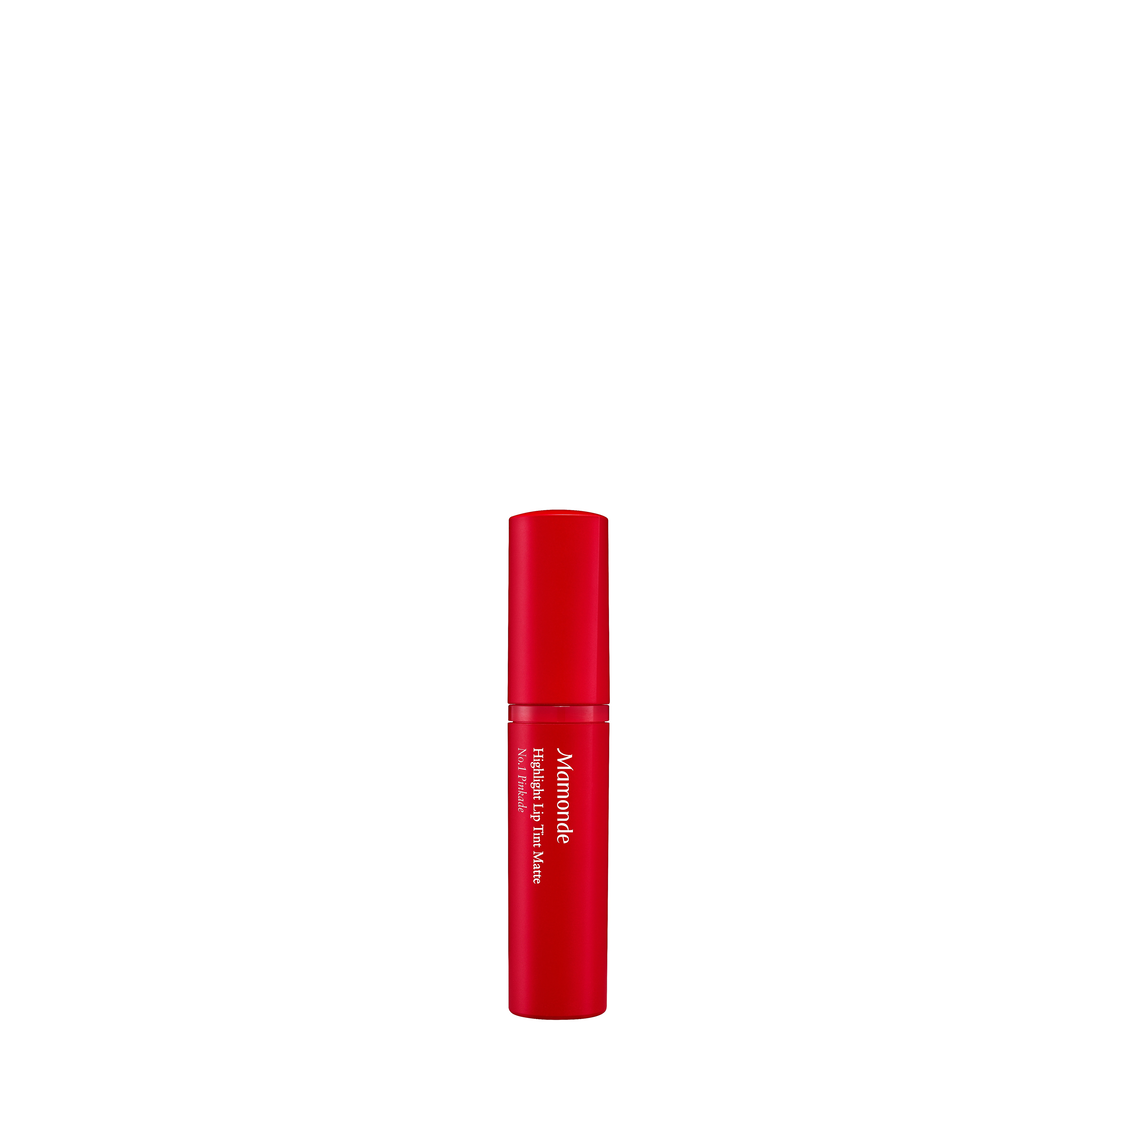 Highlight Lip Tint Matte